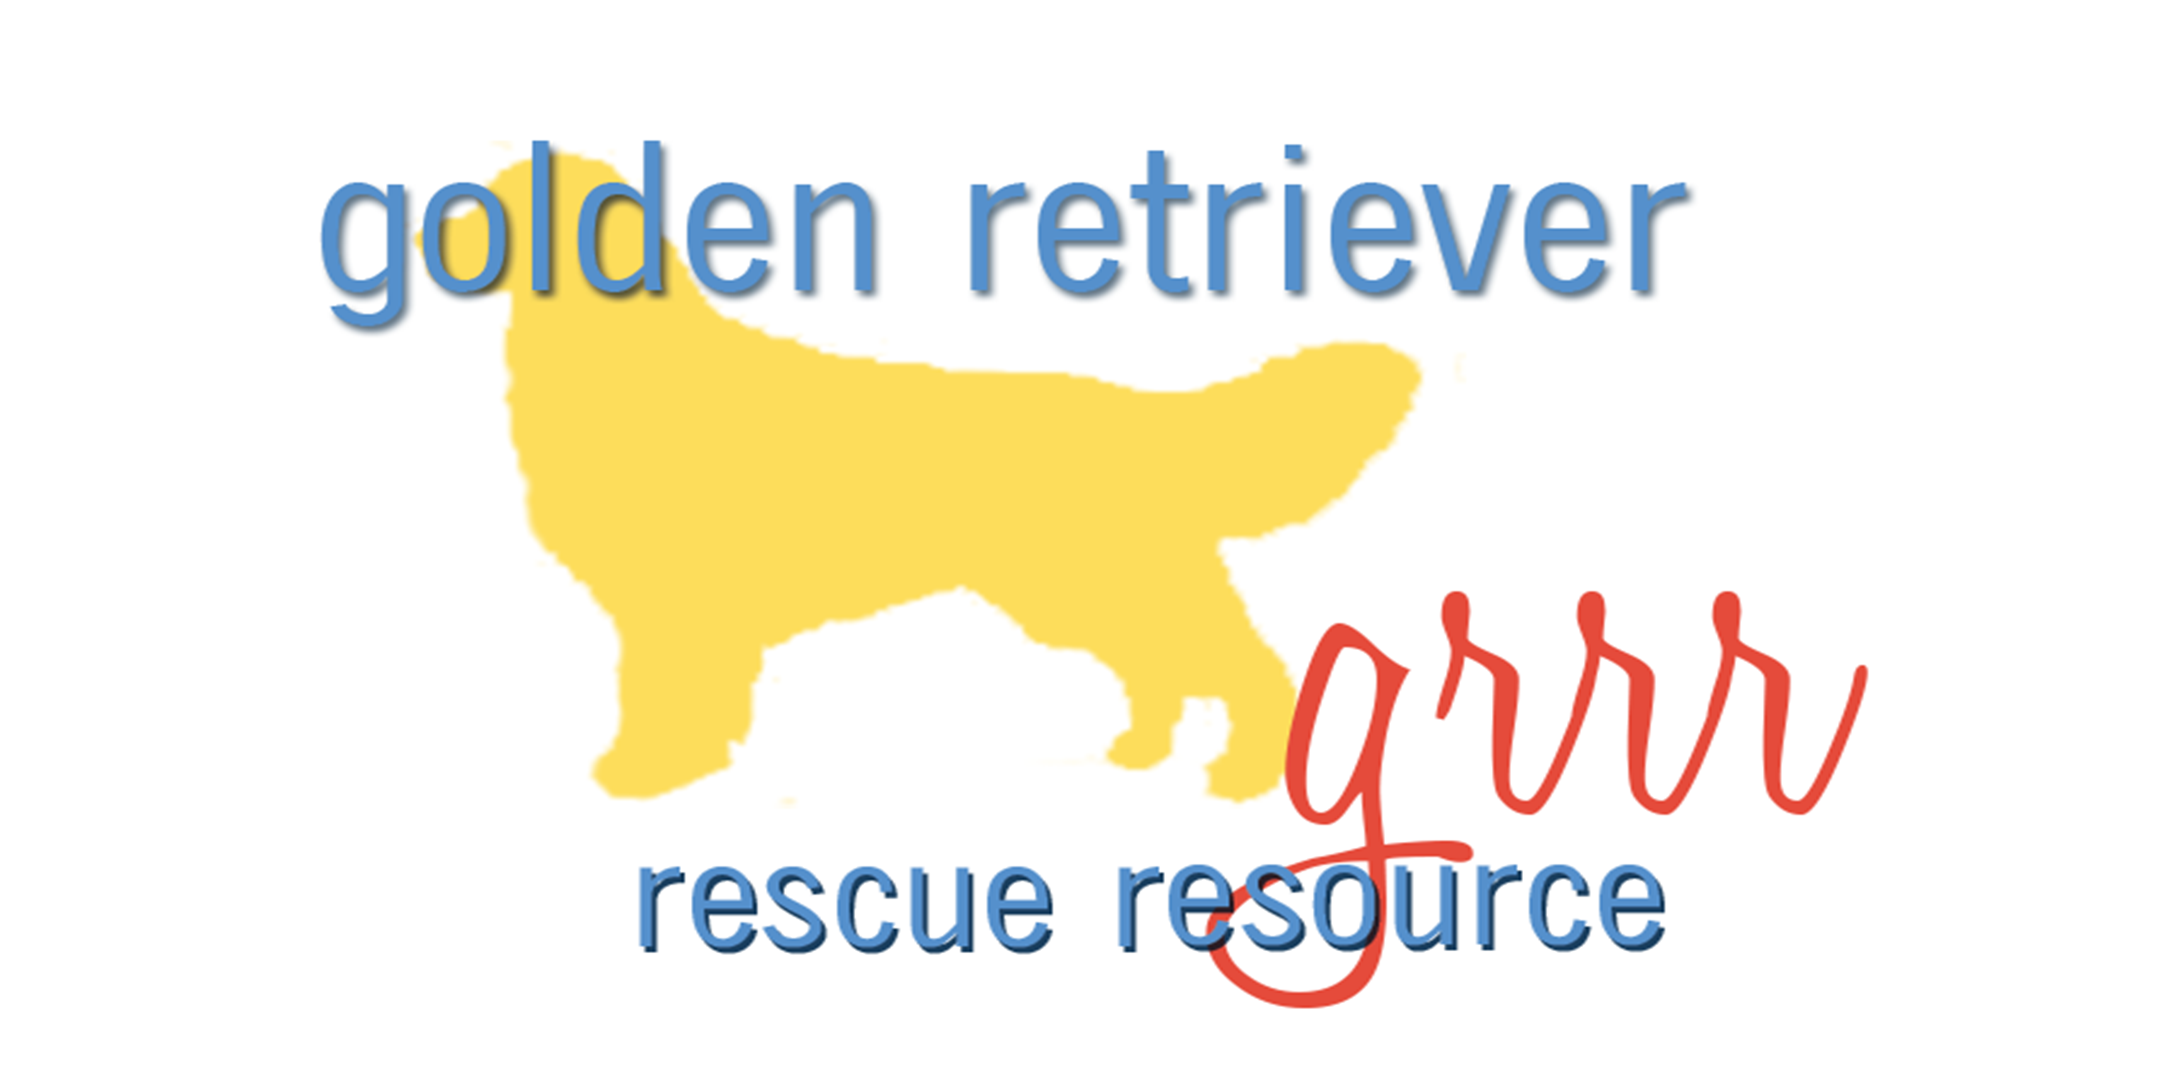 GOLDEN RETRIEVER RESCUE RESOURCE FUNDRAISER (